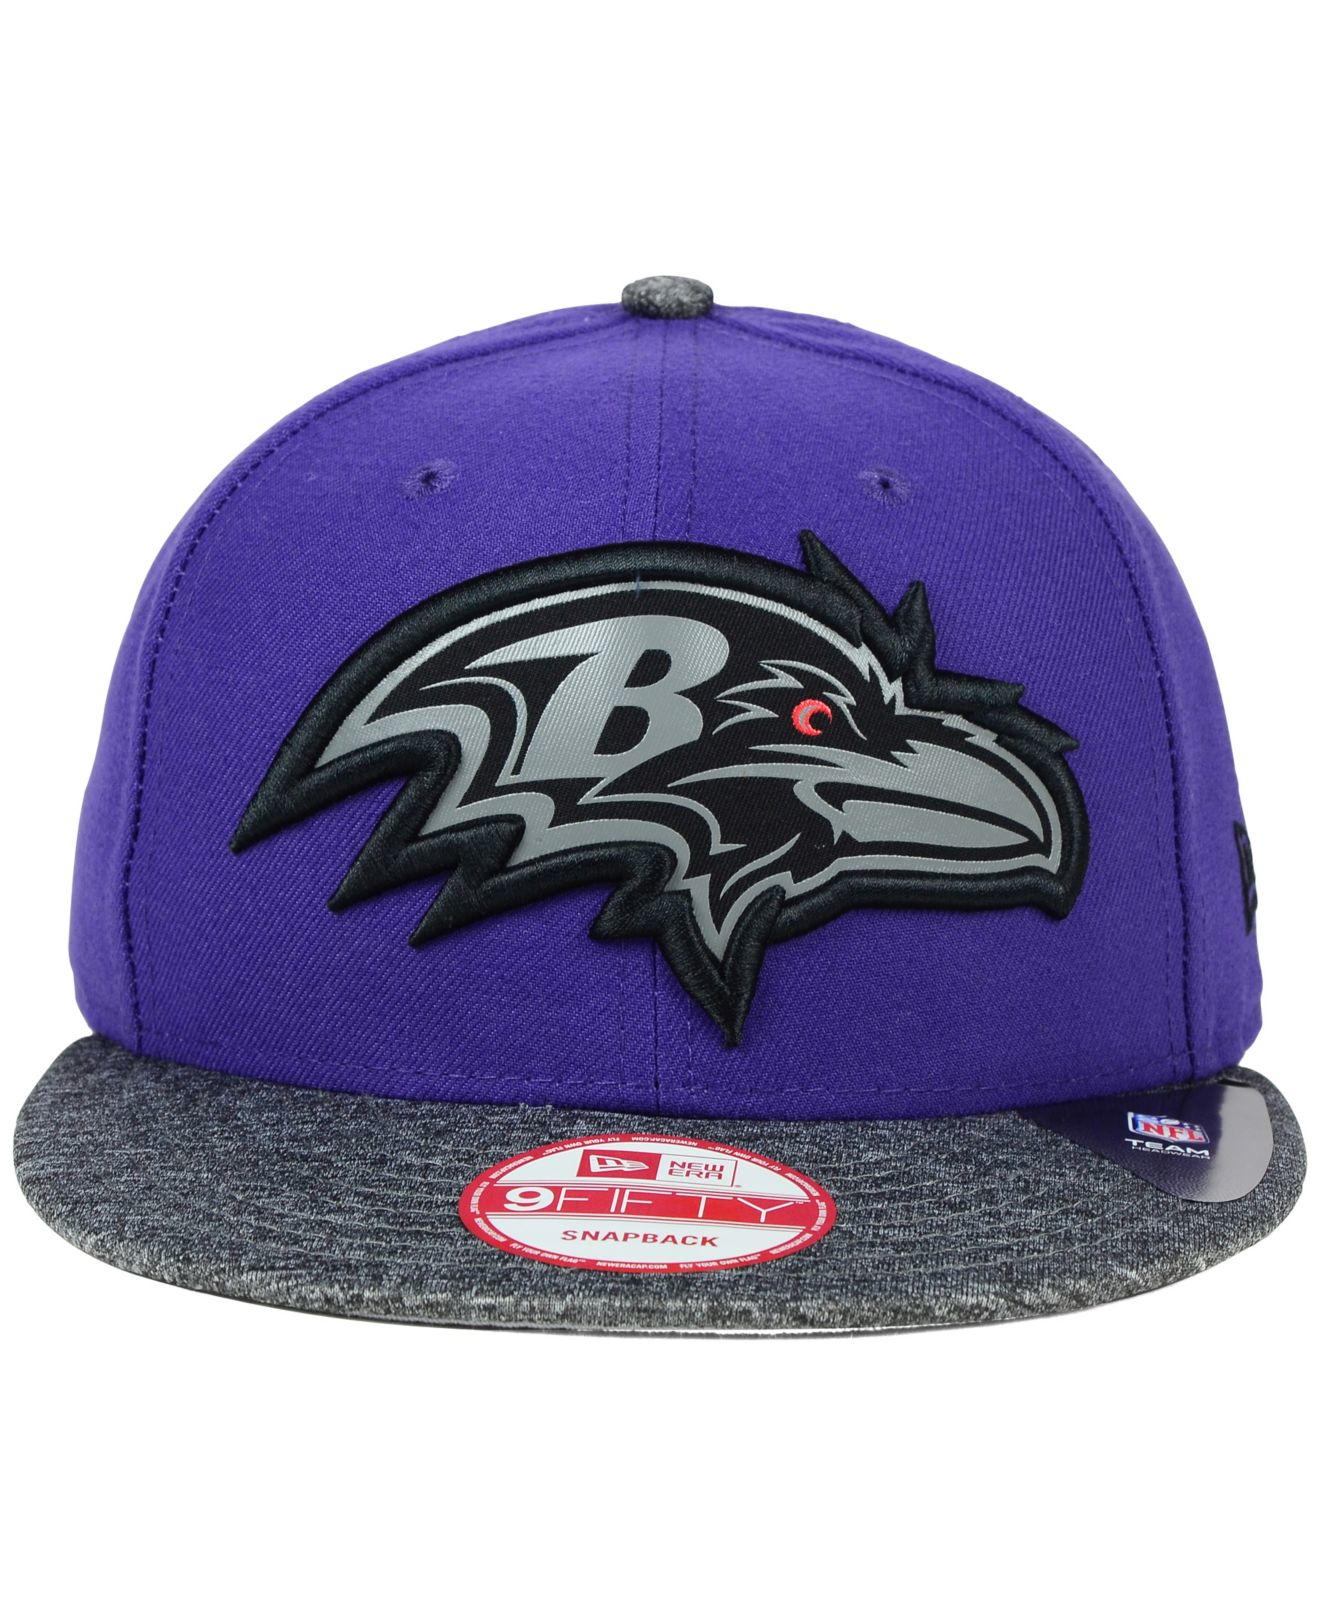 429d2ed25 good new era 9fifty pattern pop snapback hat cap 9ab9c 5af78  usa lyst ktz  baltimore ravens gridiron hook 9fifty snapback cap in b892b 2b257